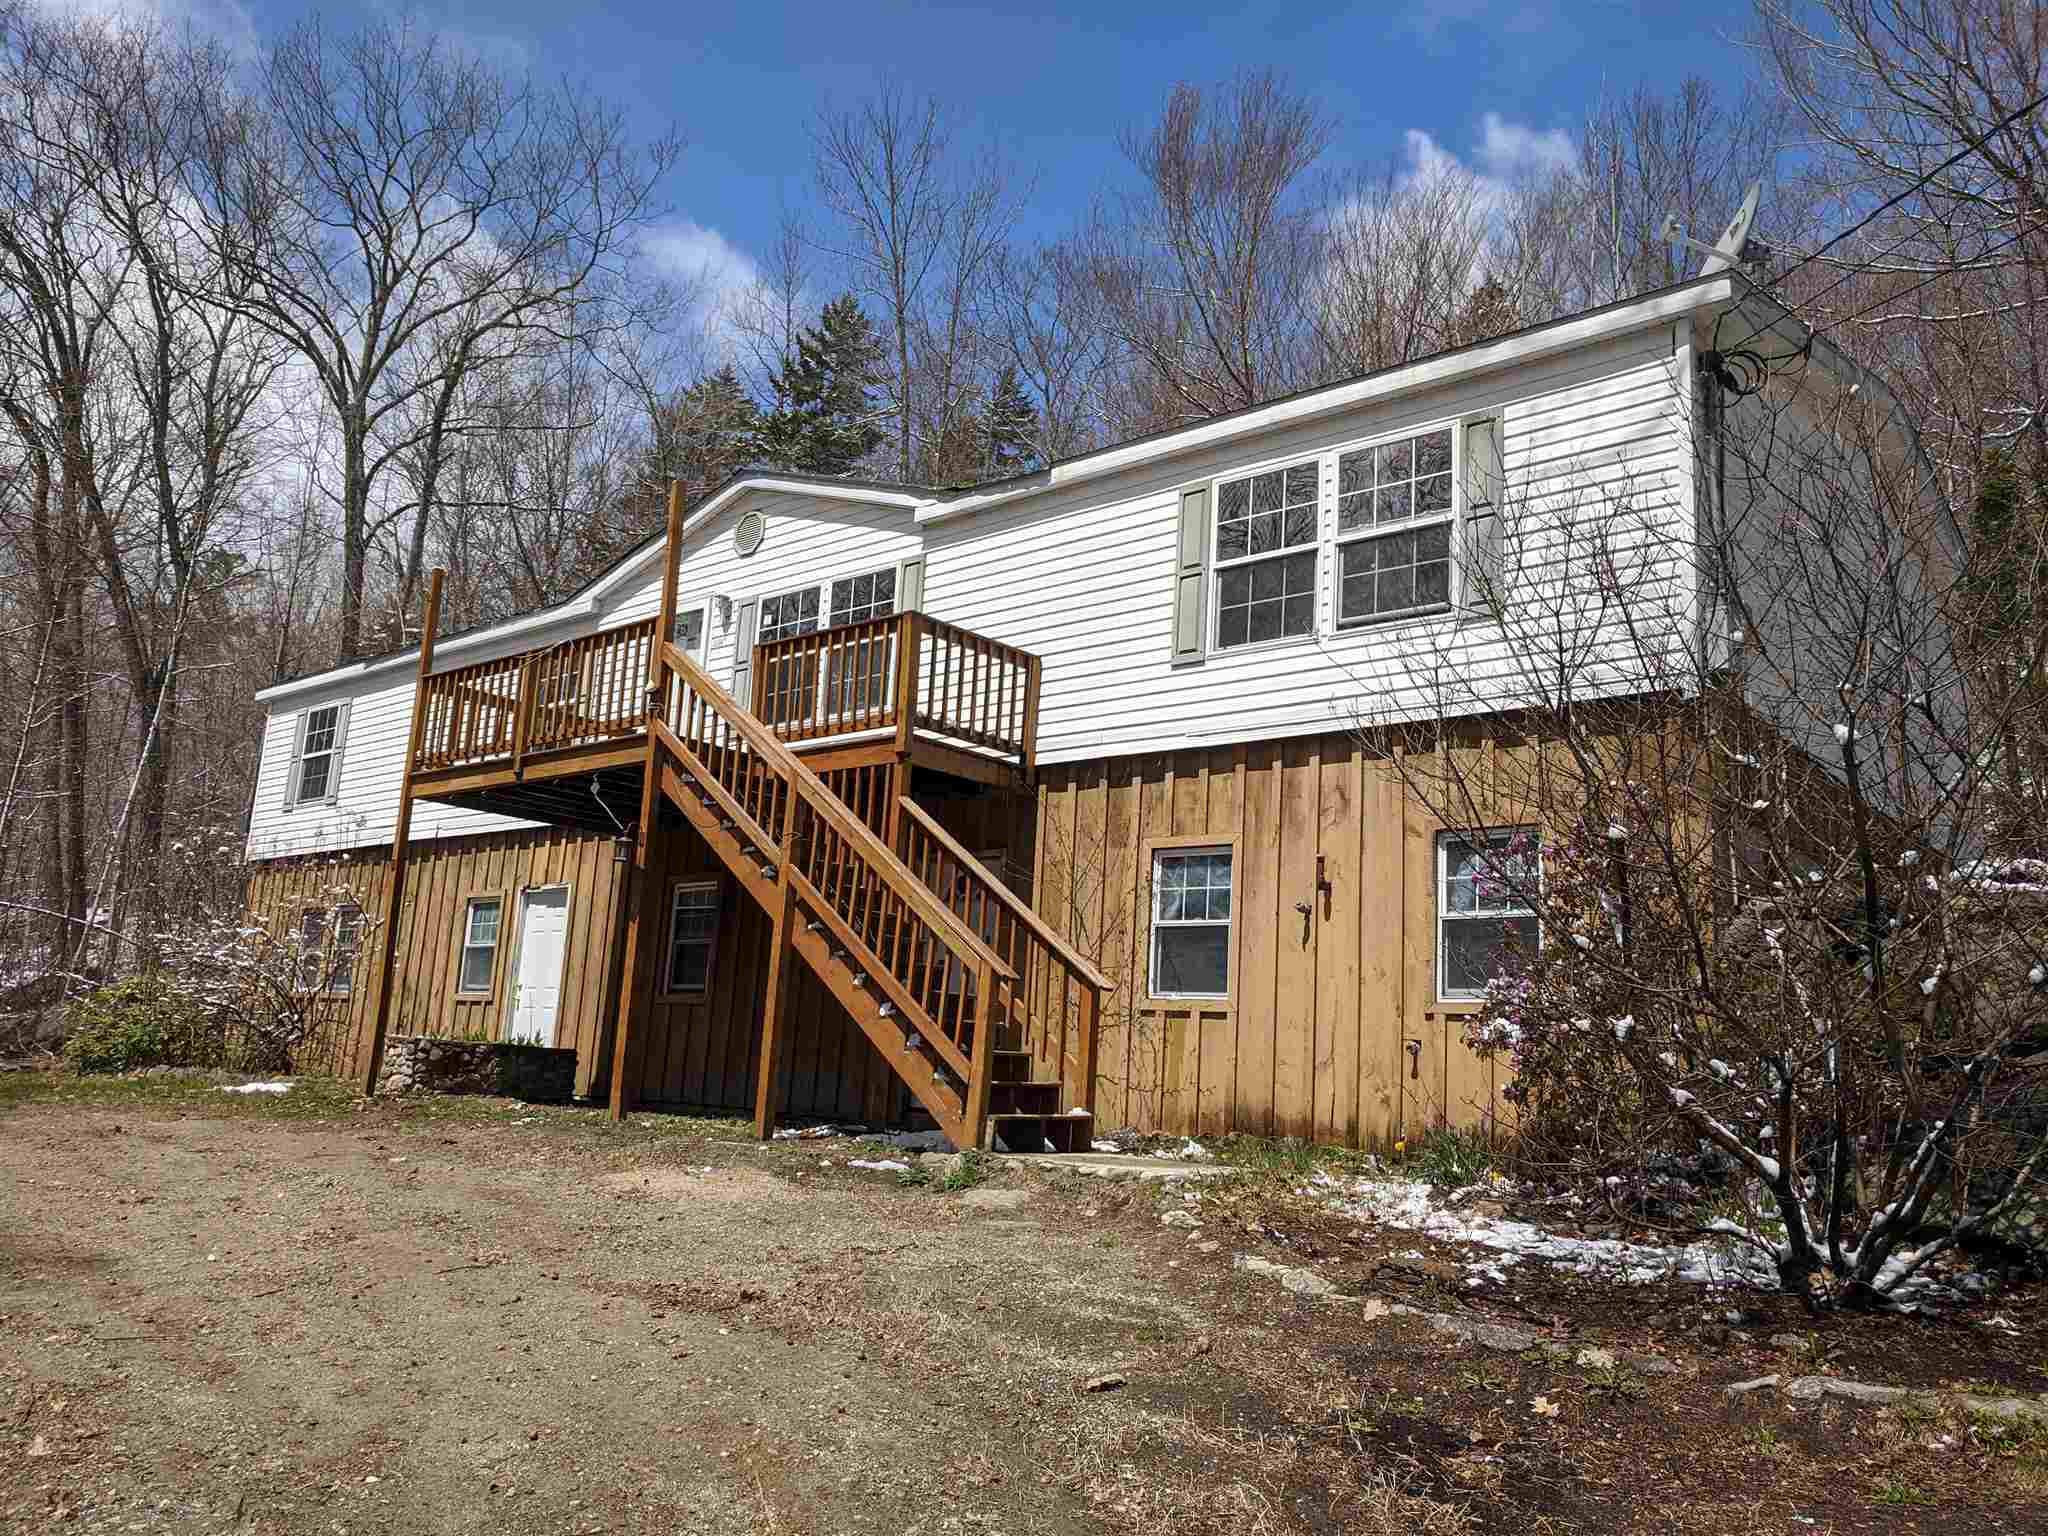 MLS 4811694: 1336 Washburn Road, Alexandria NH